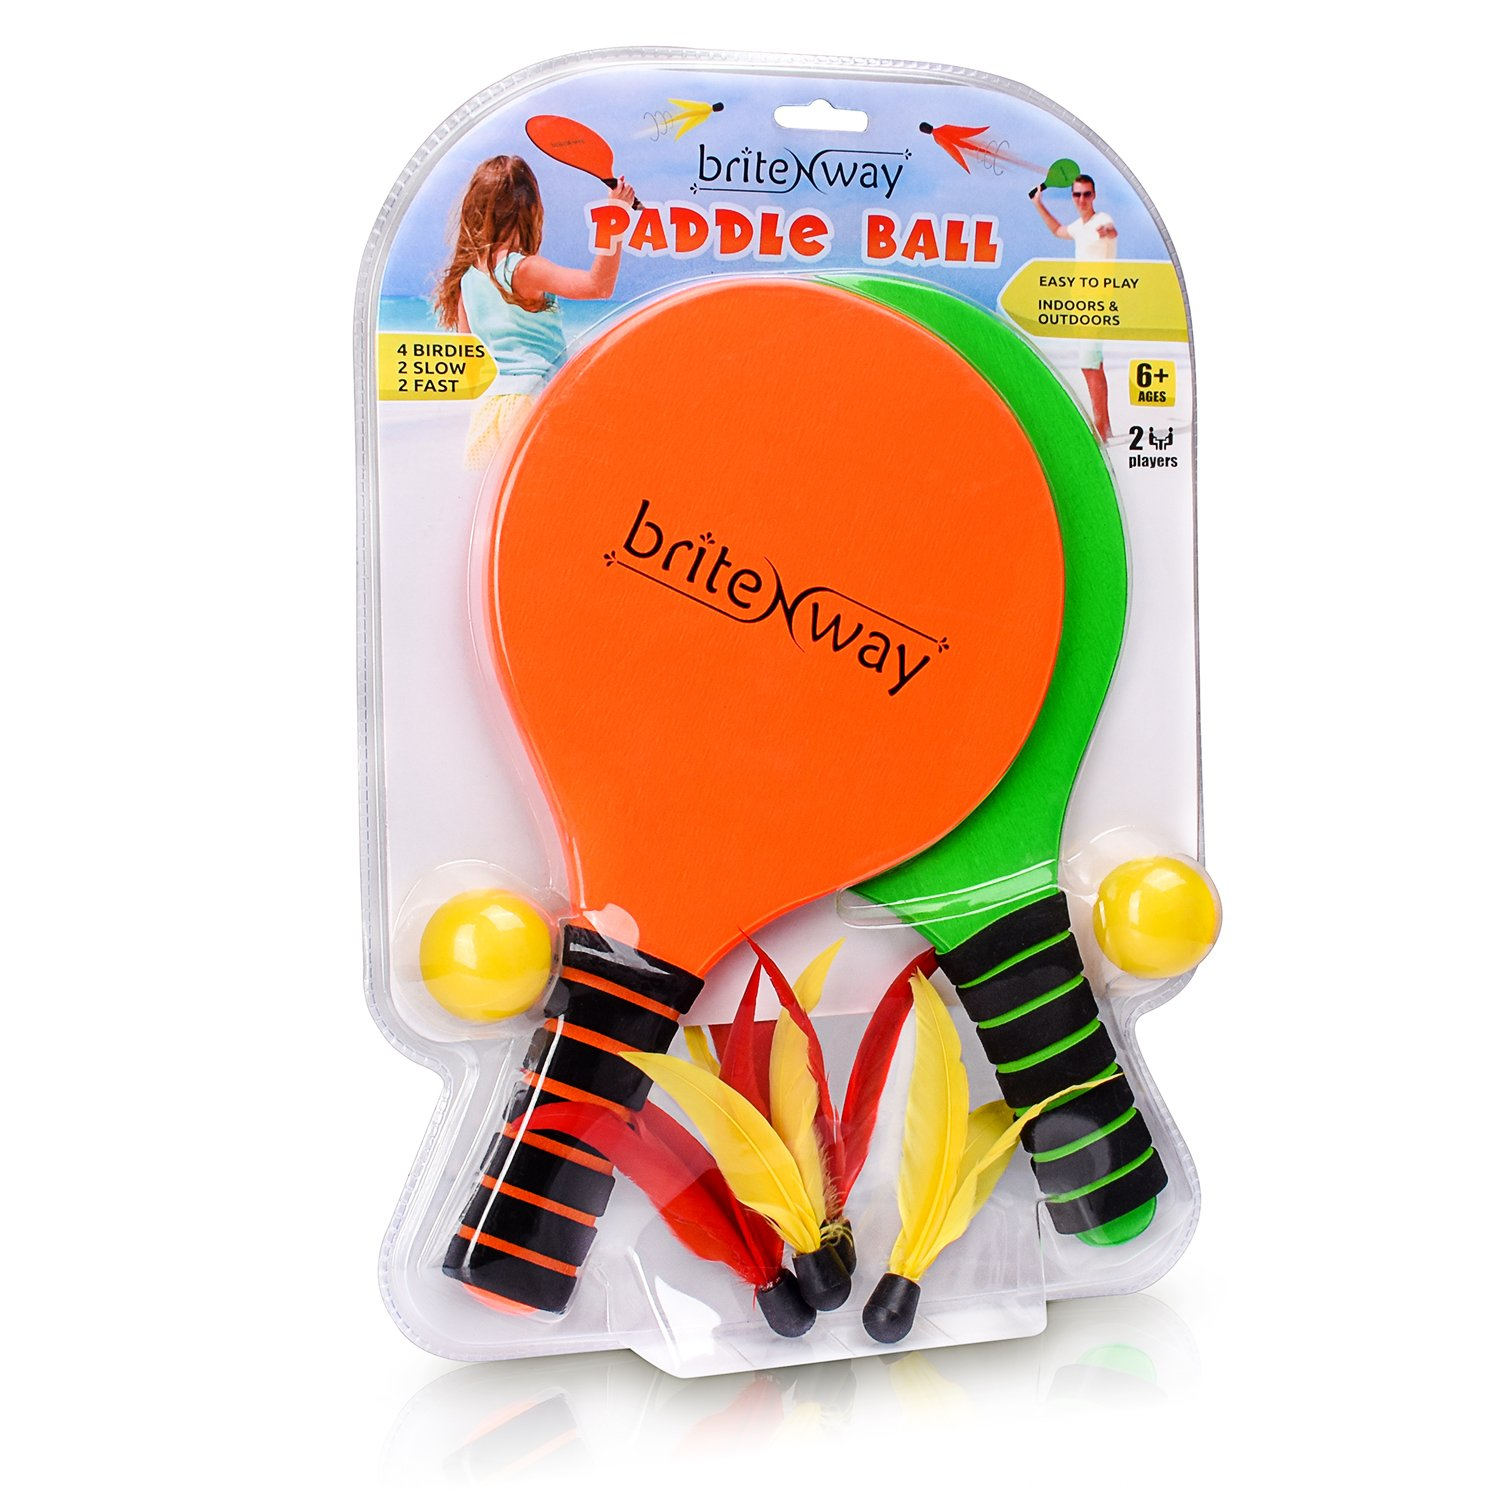 Amazon.com: briteNway Paddle Ball Game Bundle with 2 Wooden Racket Paddles, 2 Balls, 4 Shuttlecocks & 1 Carrying Bag – Comfy Grip, Durable Craftsmanship ...